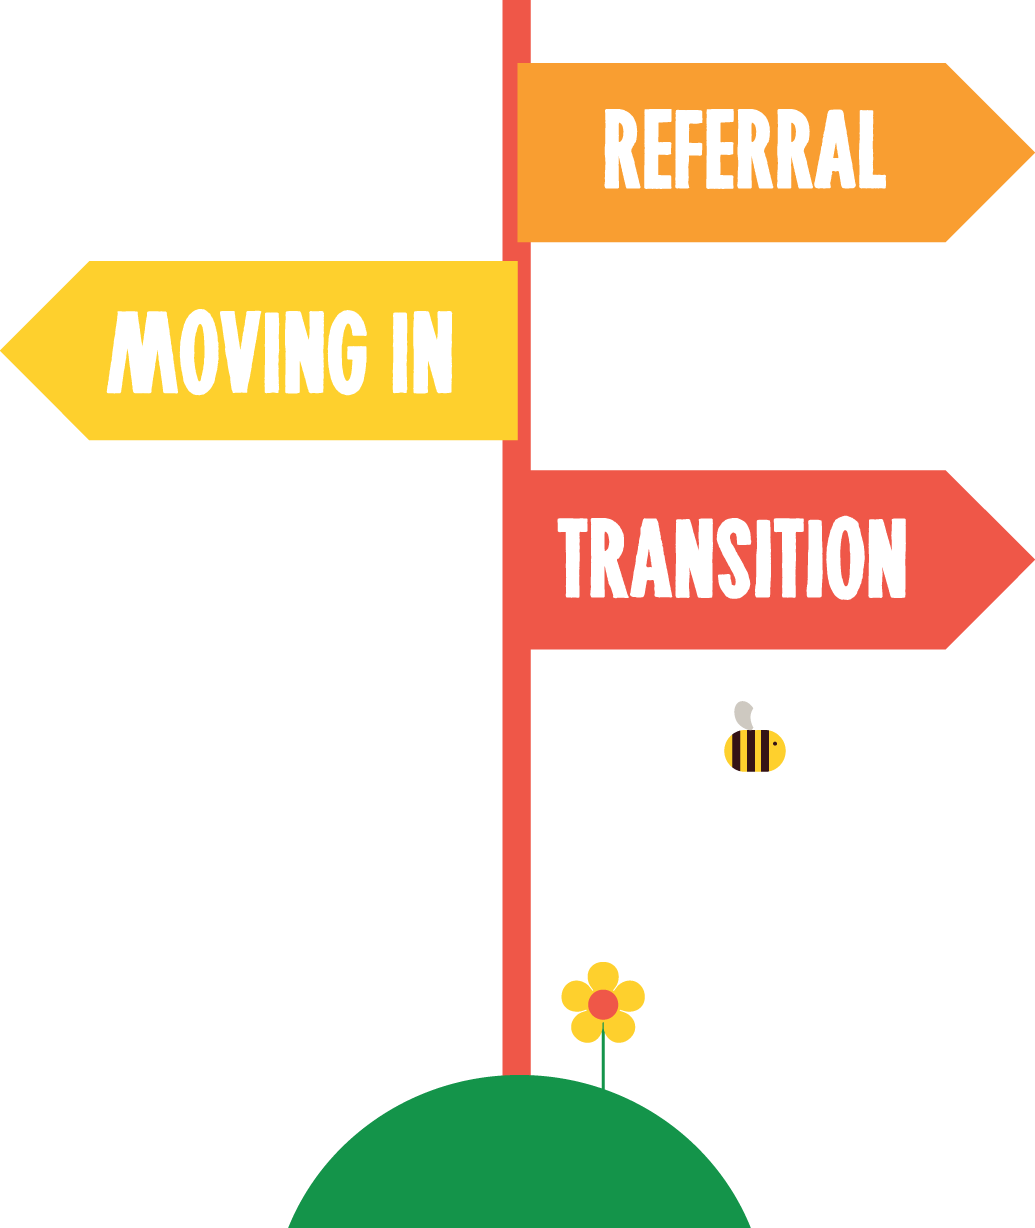 referral and transition image